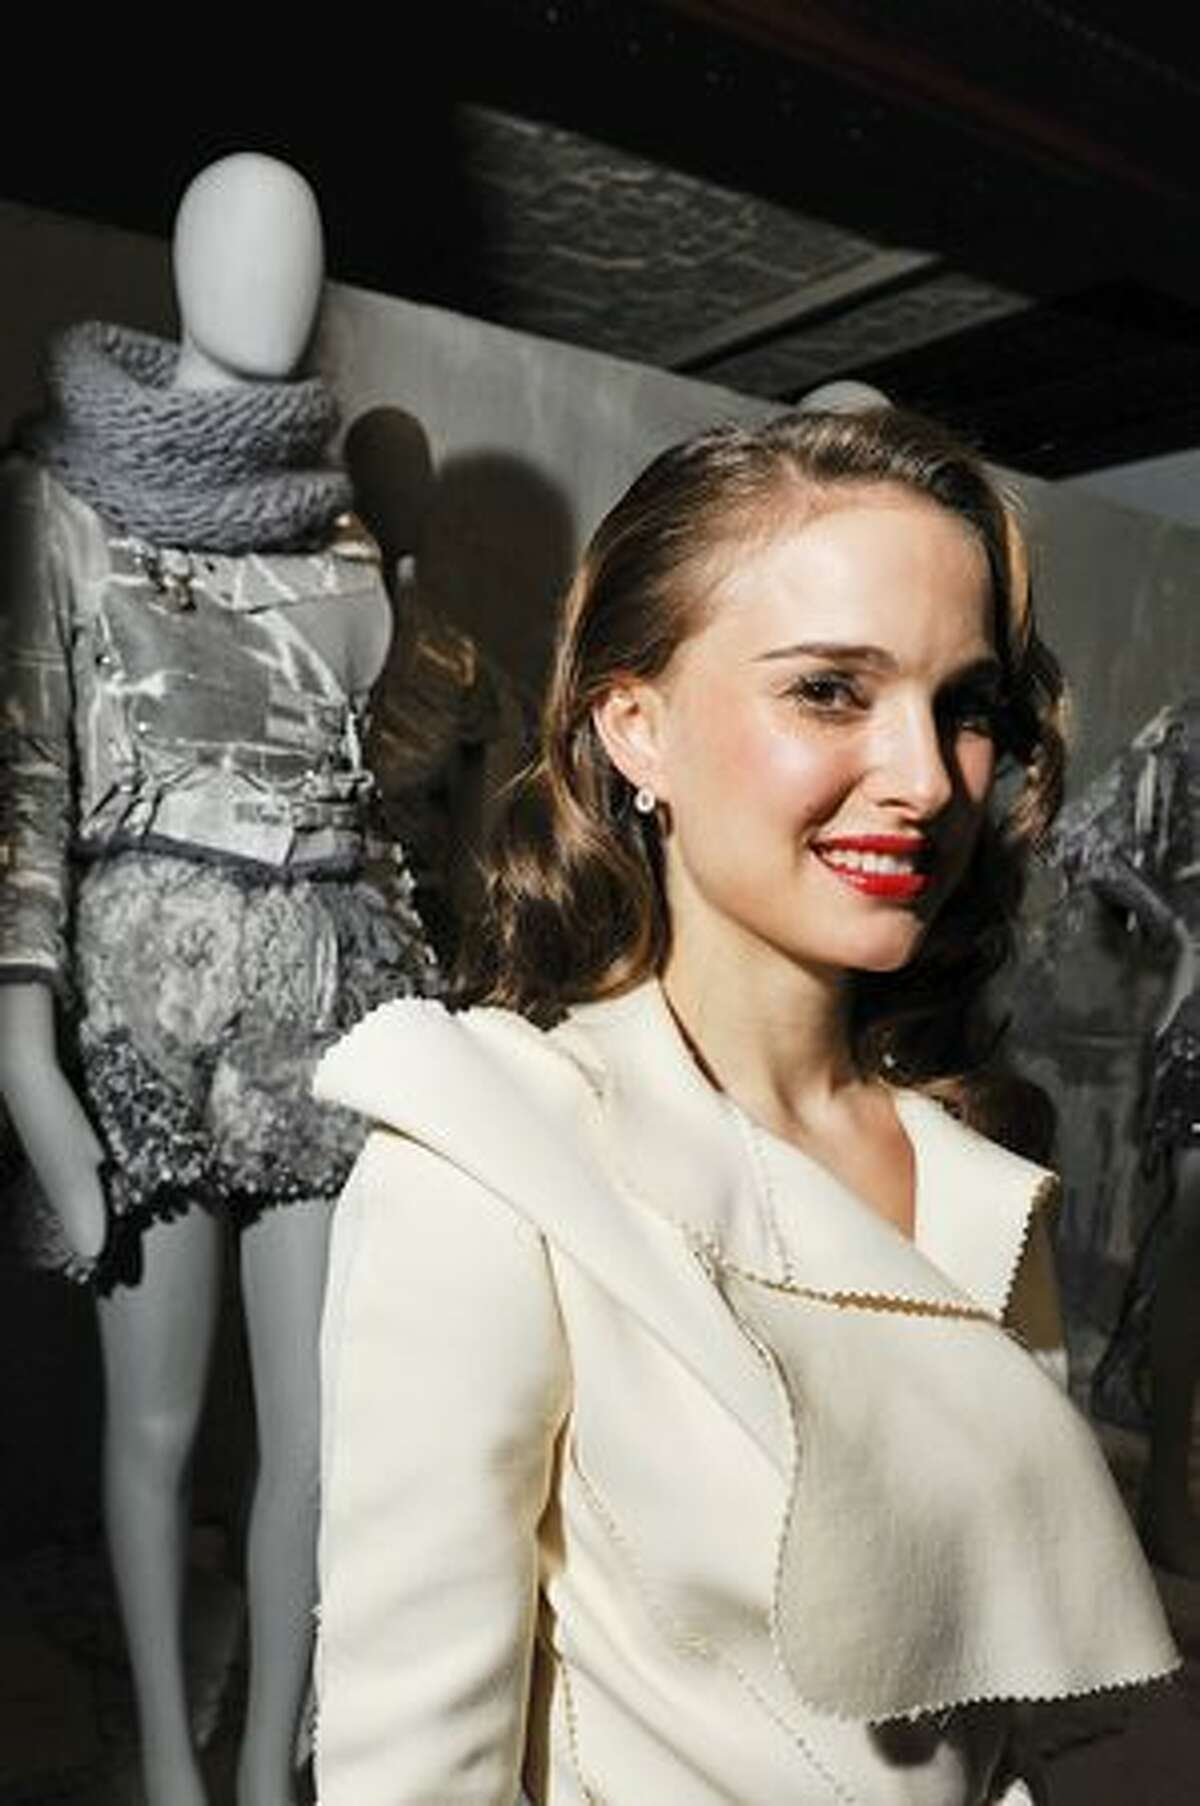 Actress Natalie Portman attends the